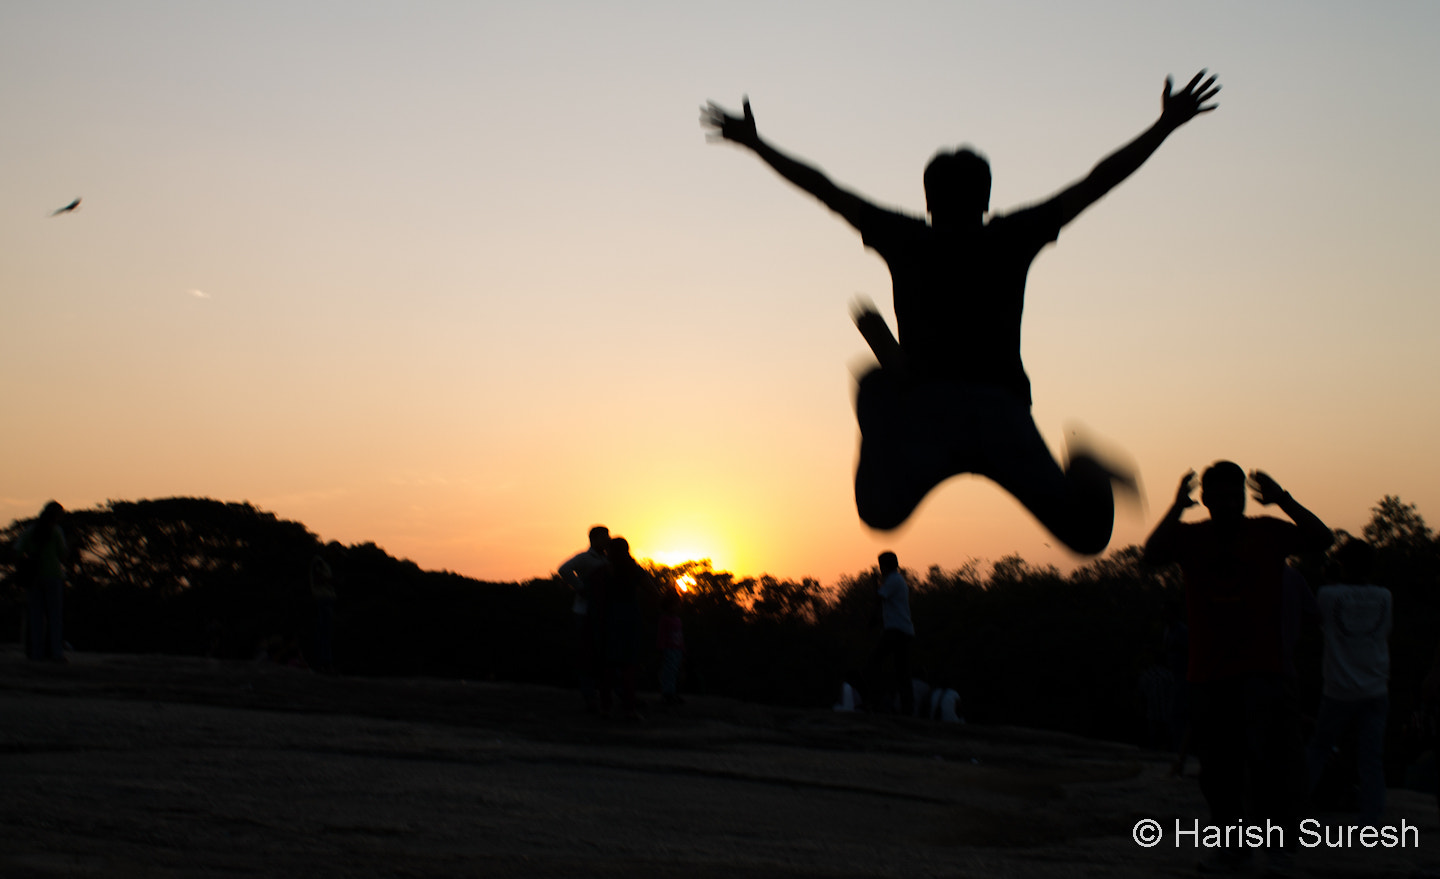 Photograph Jumping for Joy by Harish Suresh on 500px